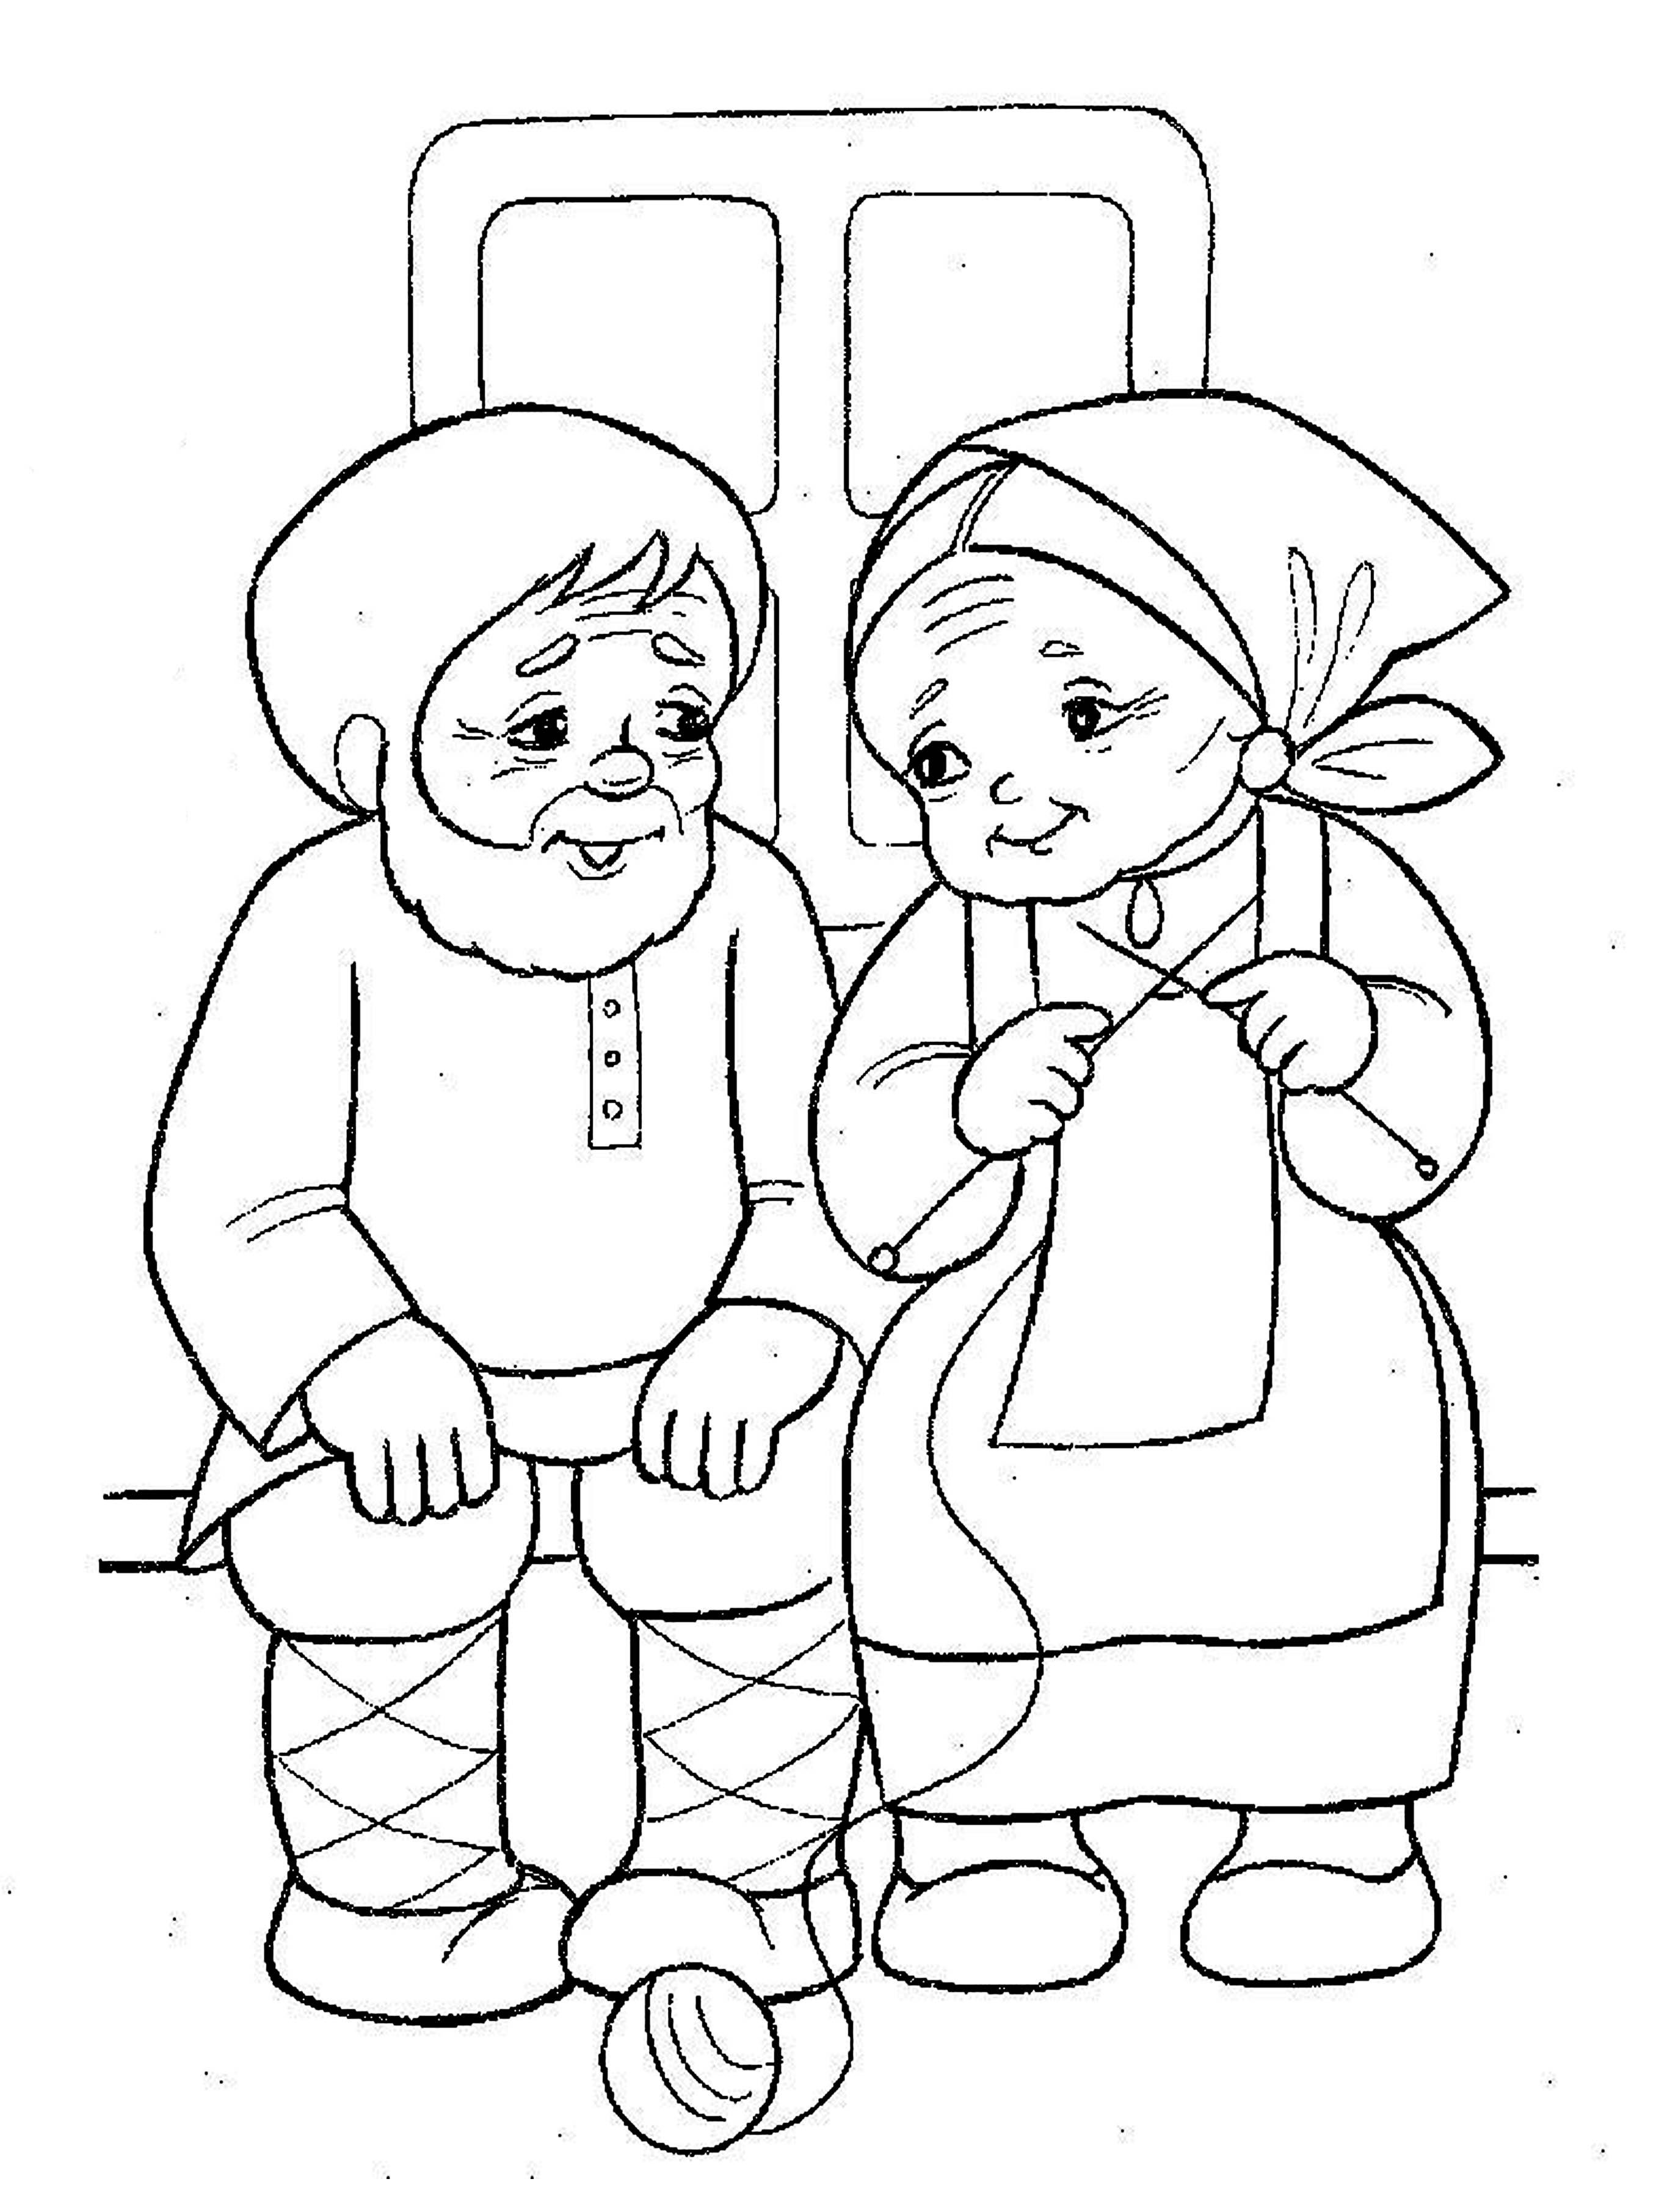 Coloring coloring pages to the tale bun How ugly did Gingerbread with grandparents, that he was callous,